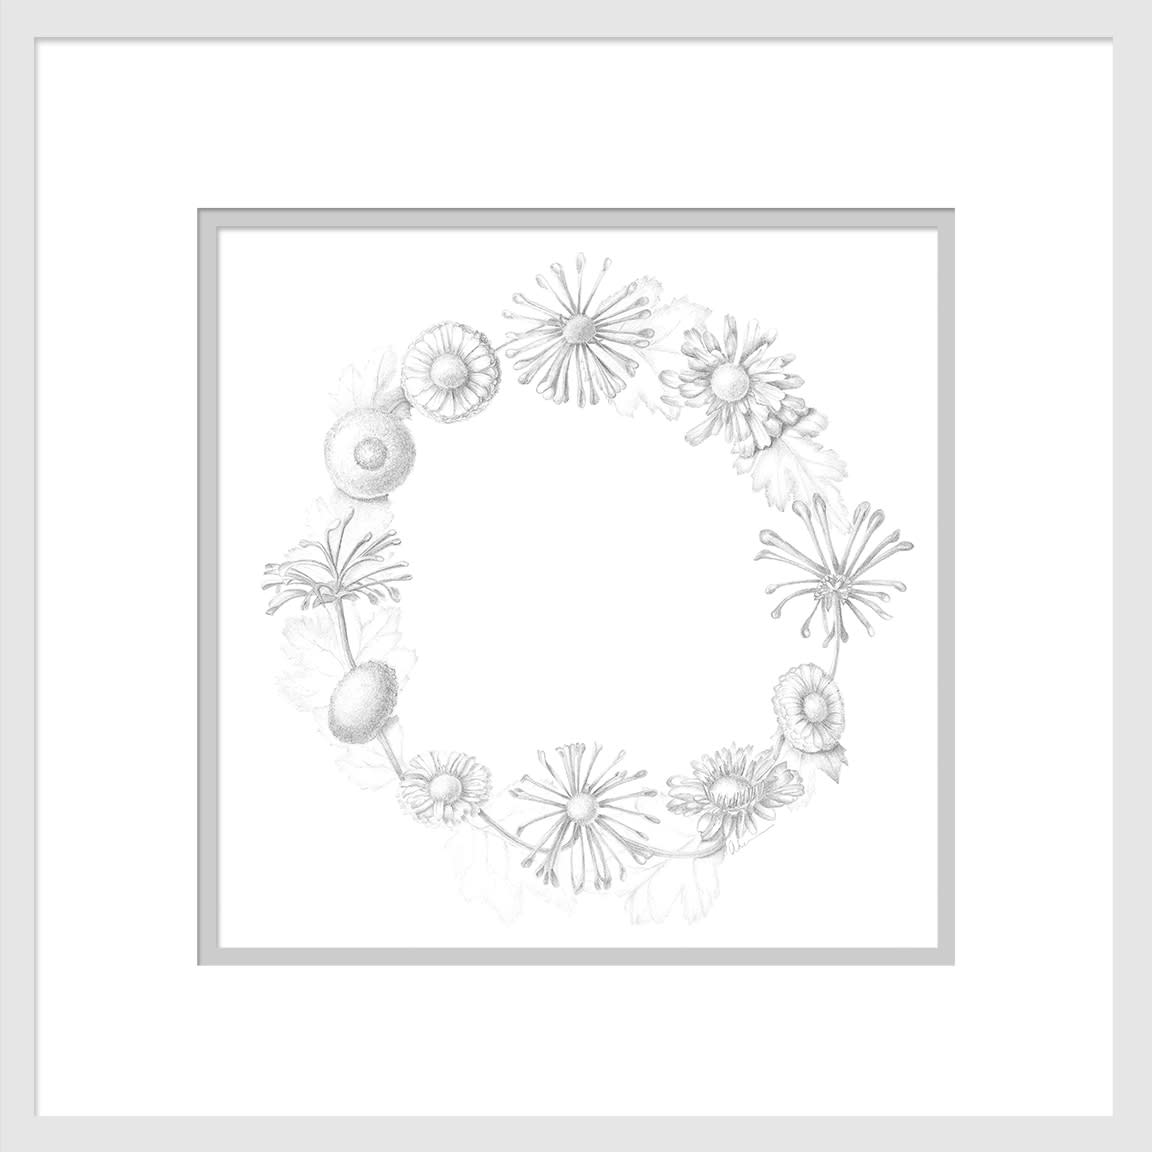 020501 circle of compositae 10x10 matted to16x16 tgonck